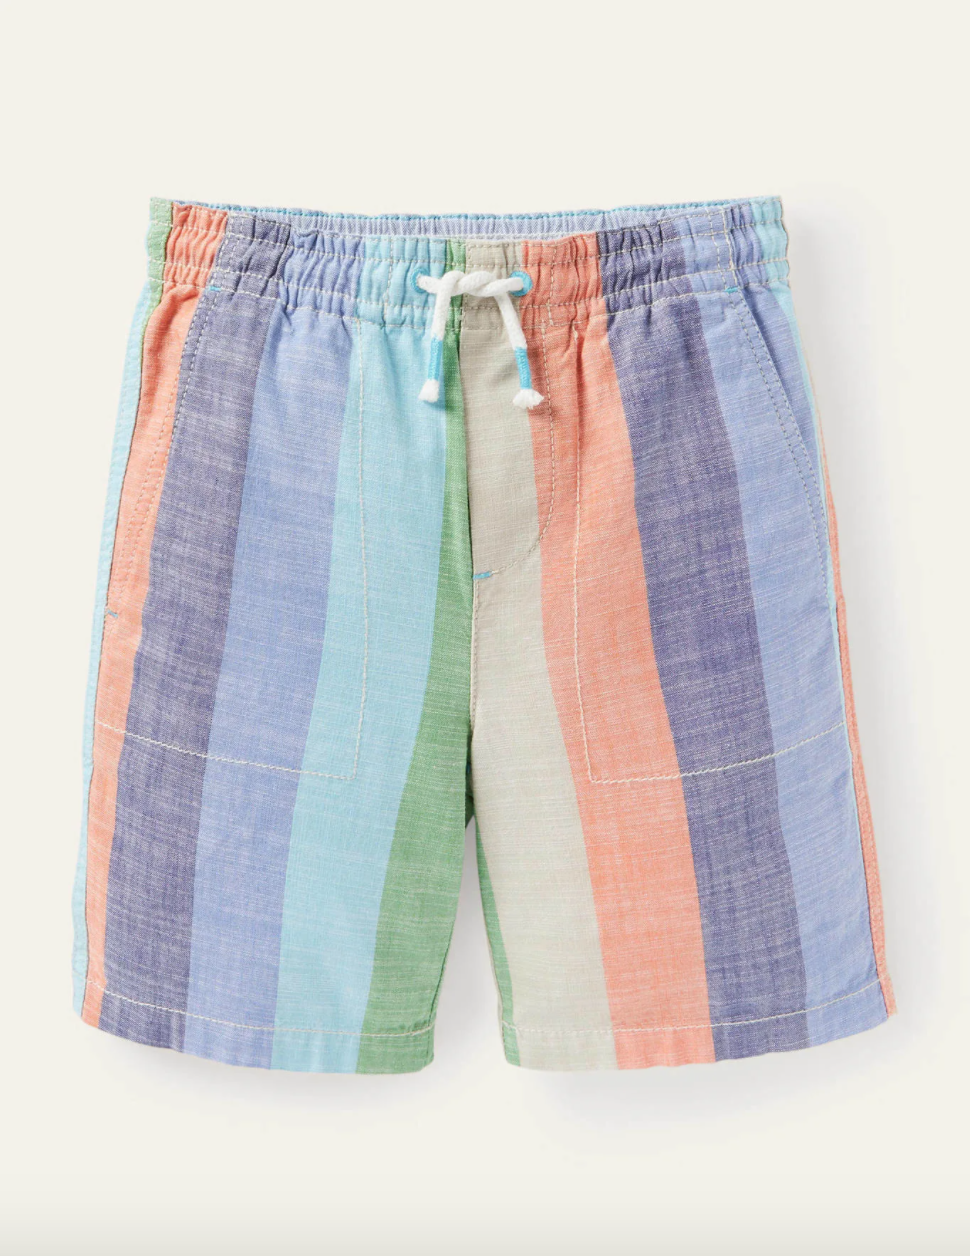 Drawstring striped shorts in purple, blue, orange, green, and yellow